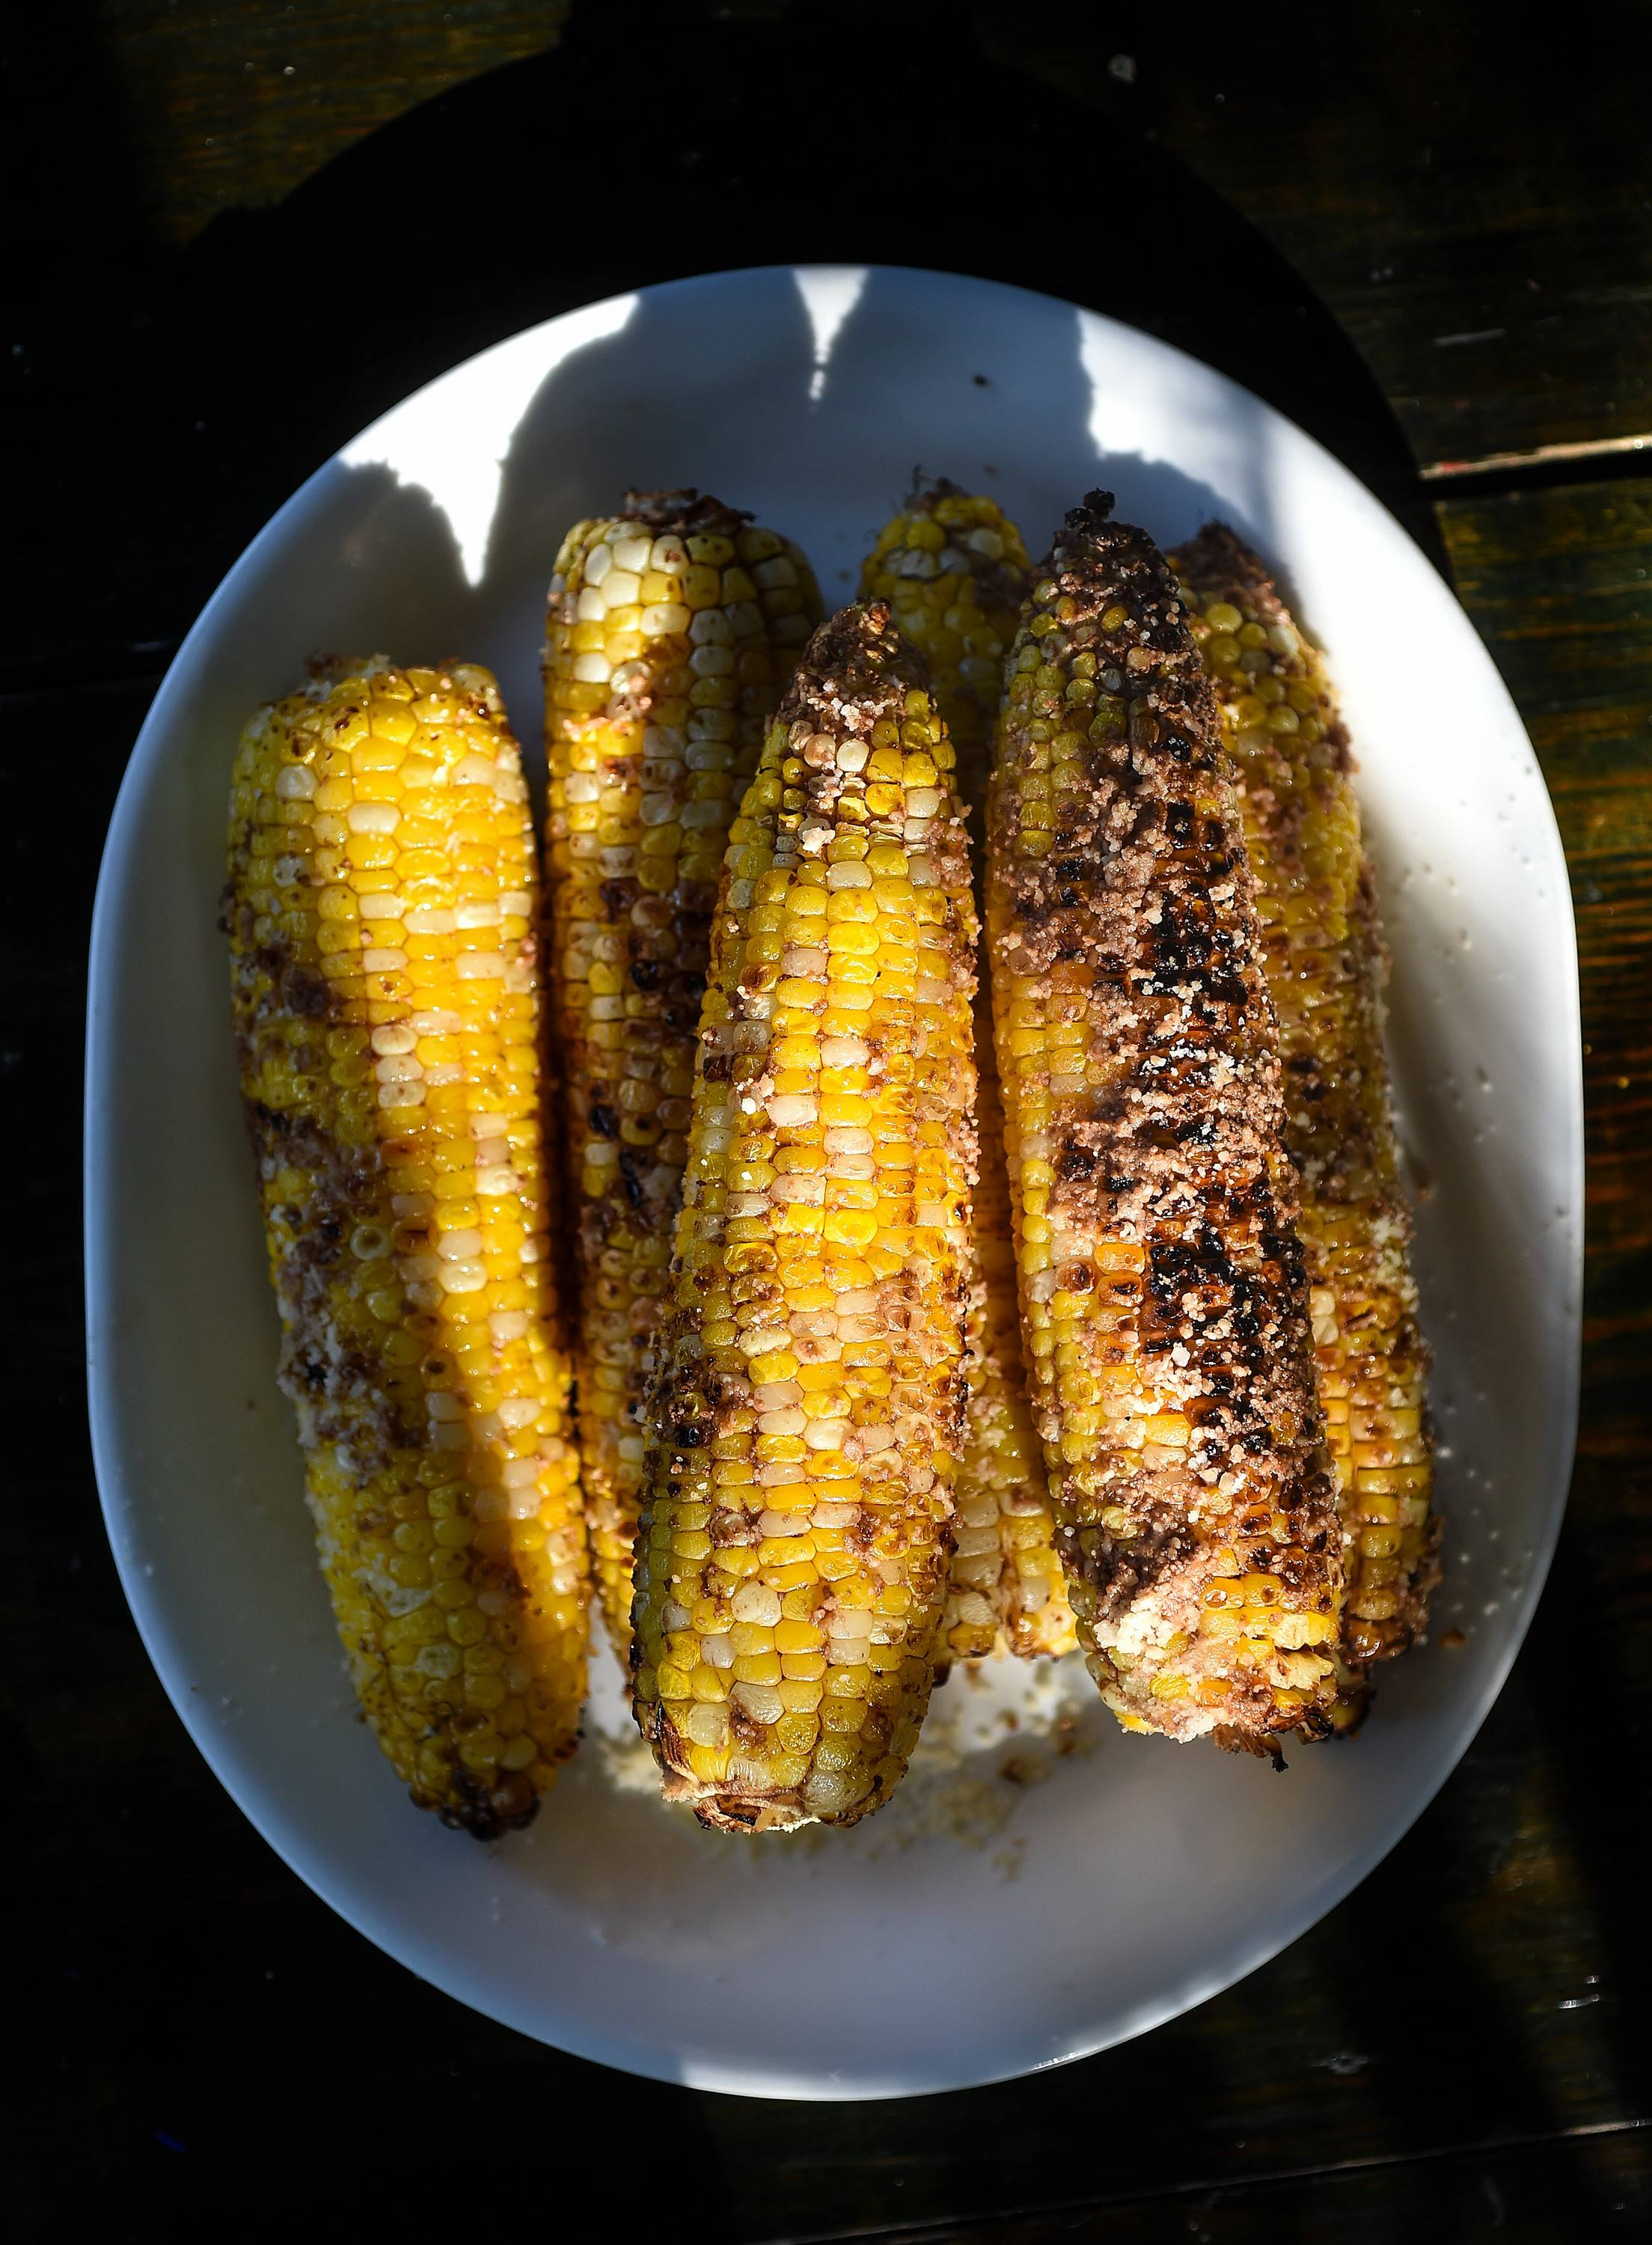 Corn on the cob and fire, put to the test